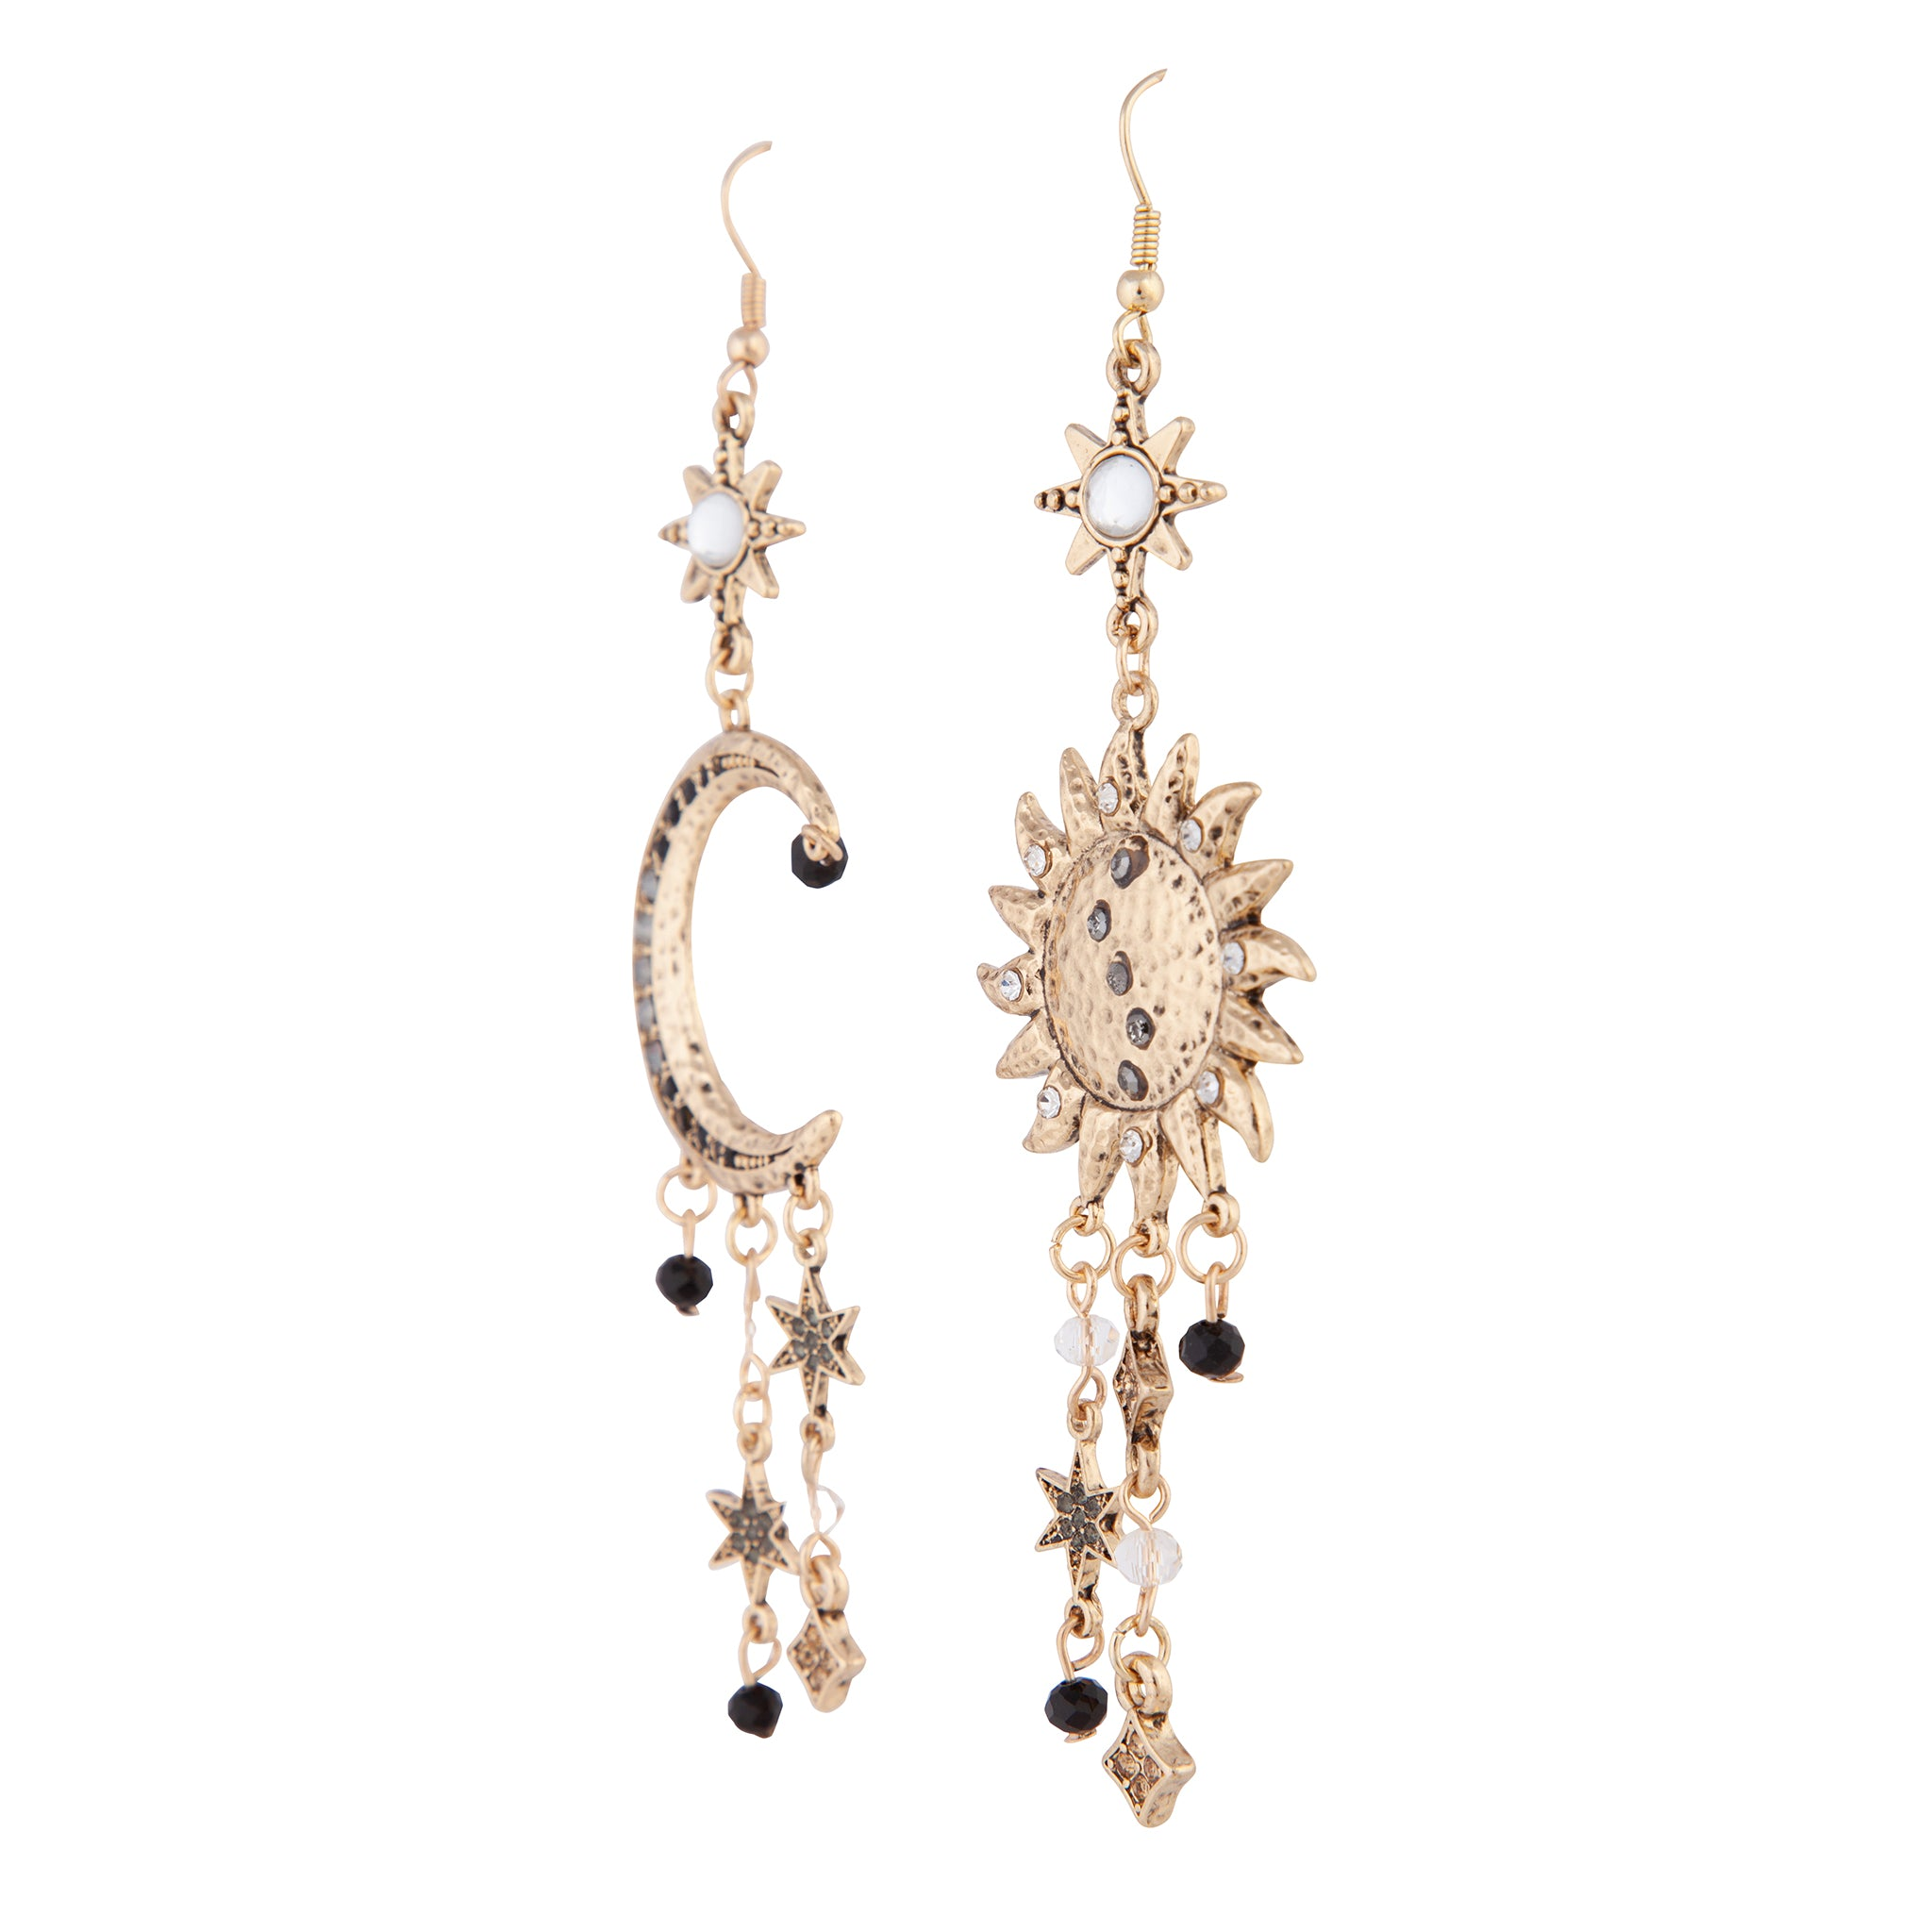 Antique Gold Celestial Grey Black Gem Earring